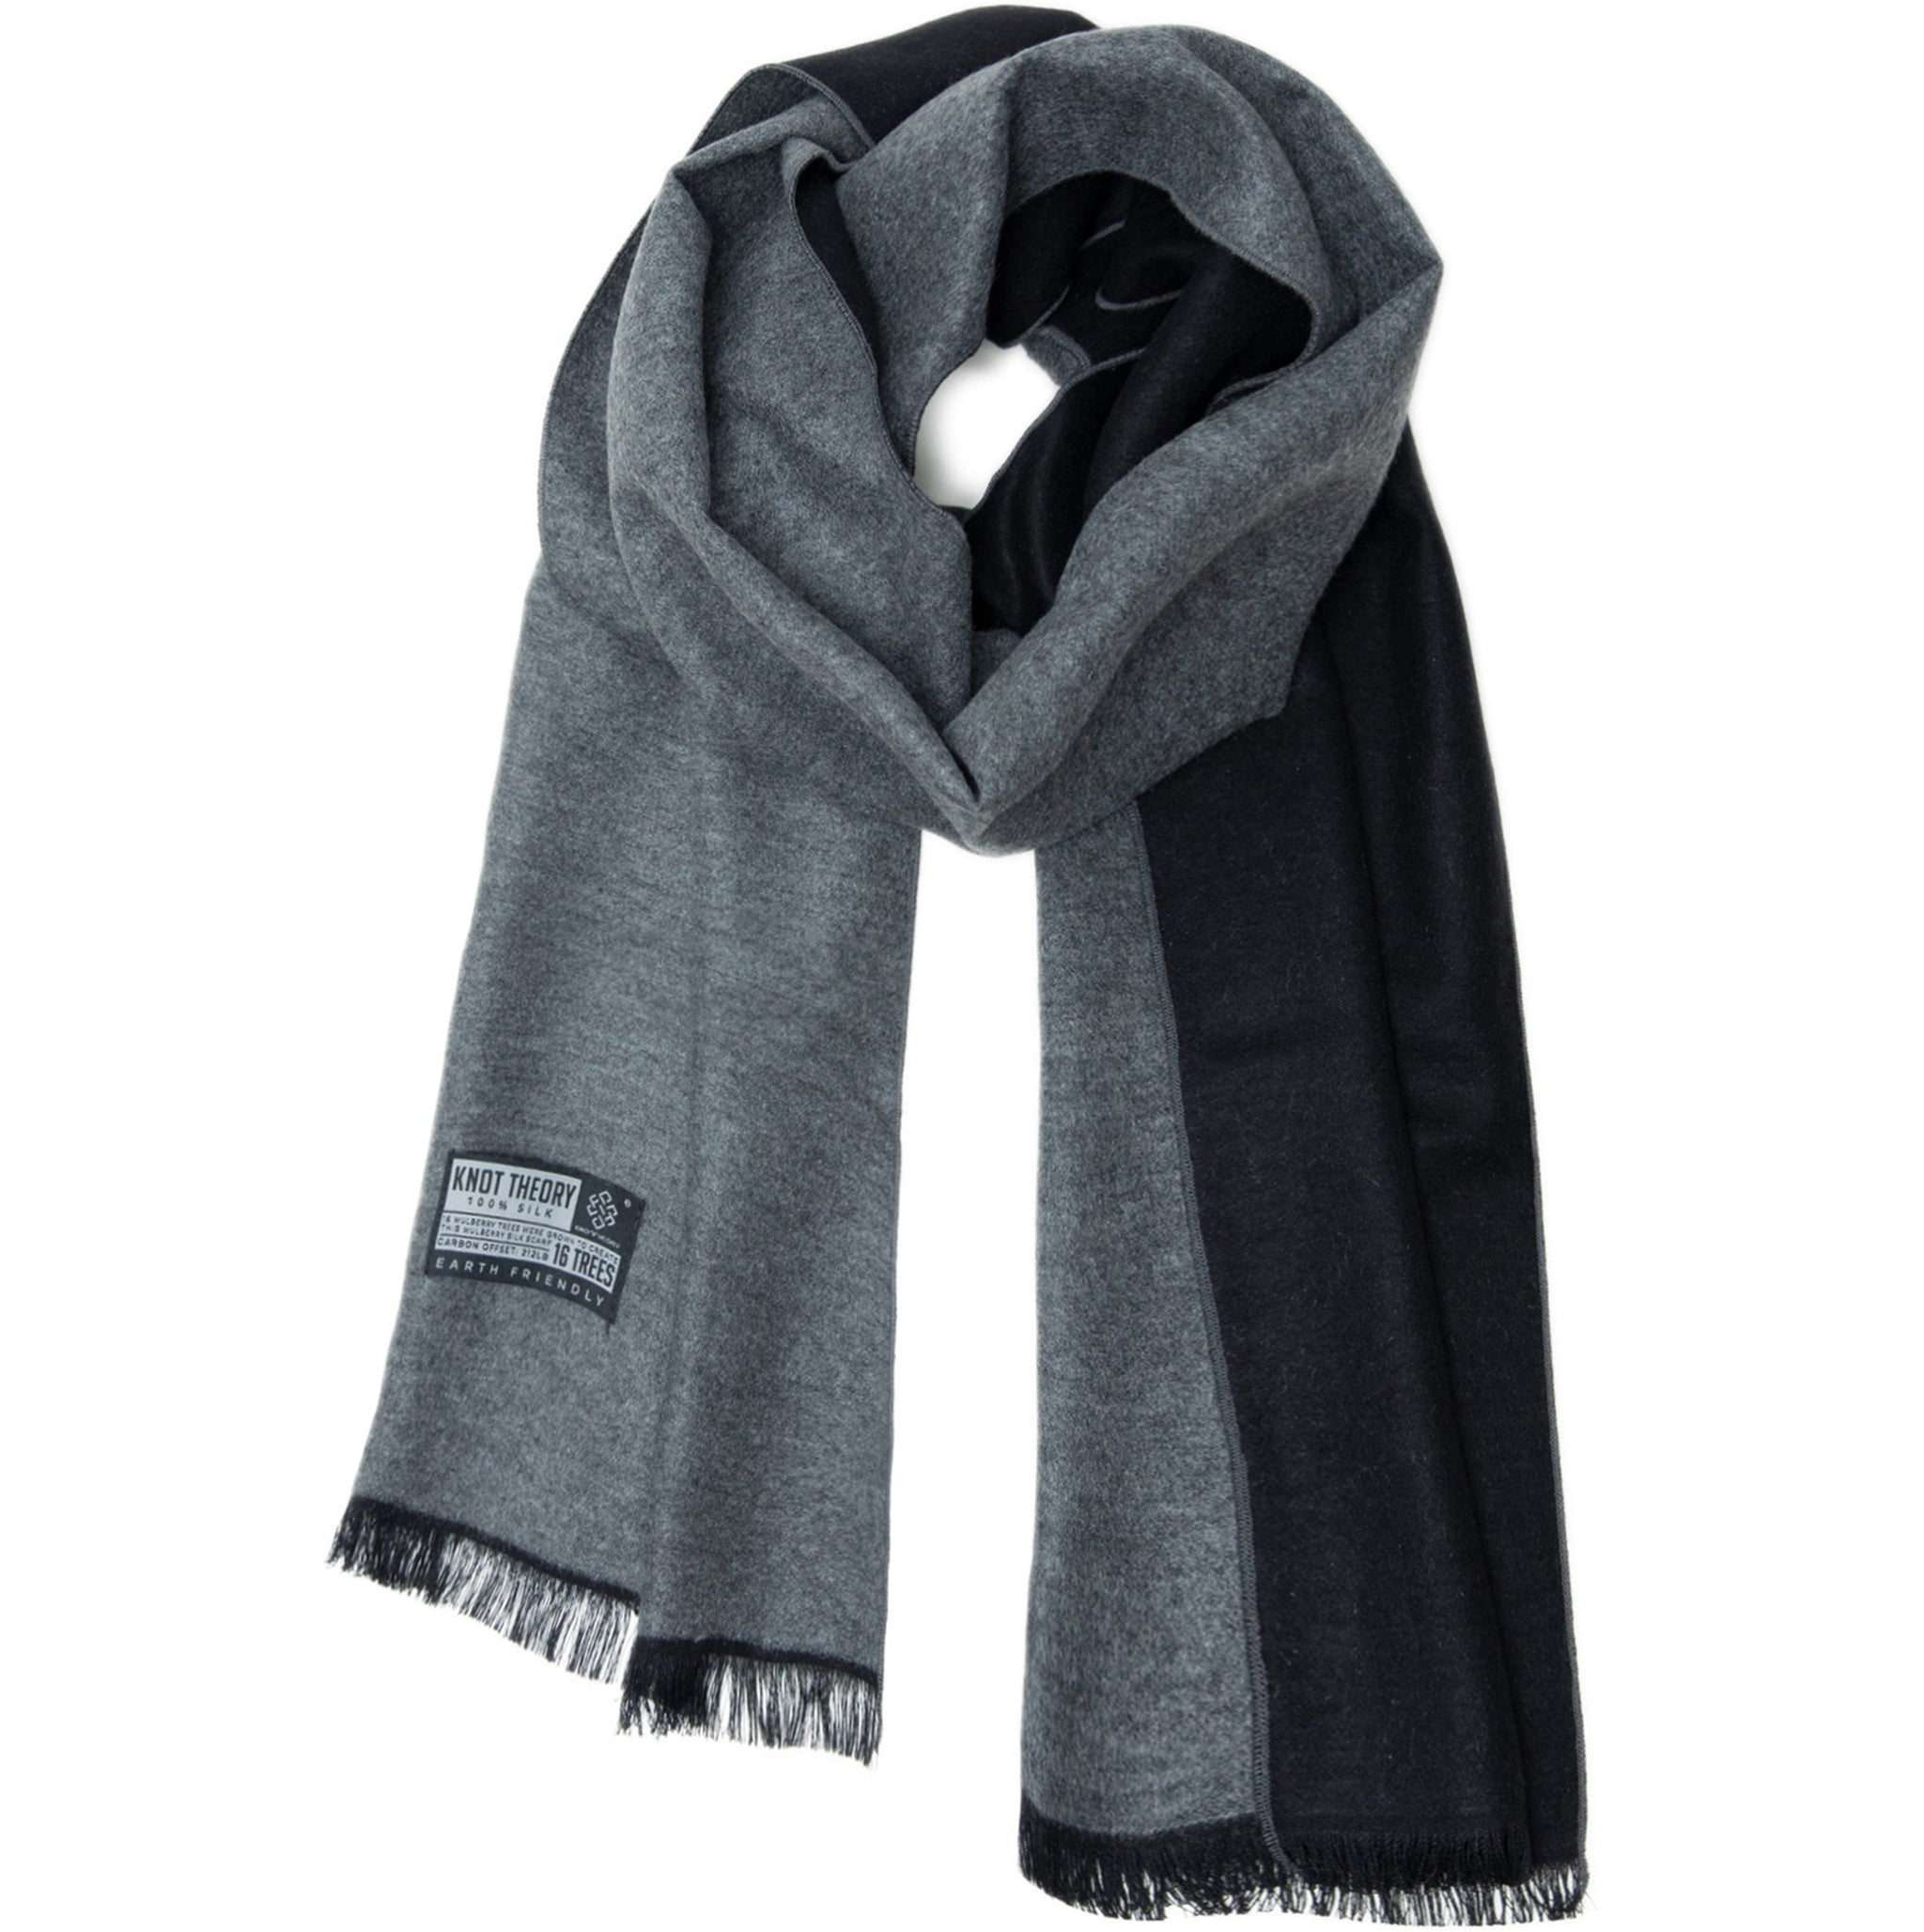 Black Grey Eco Scarf - Softer than Cashmere 100% Silk